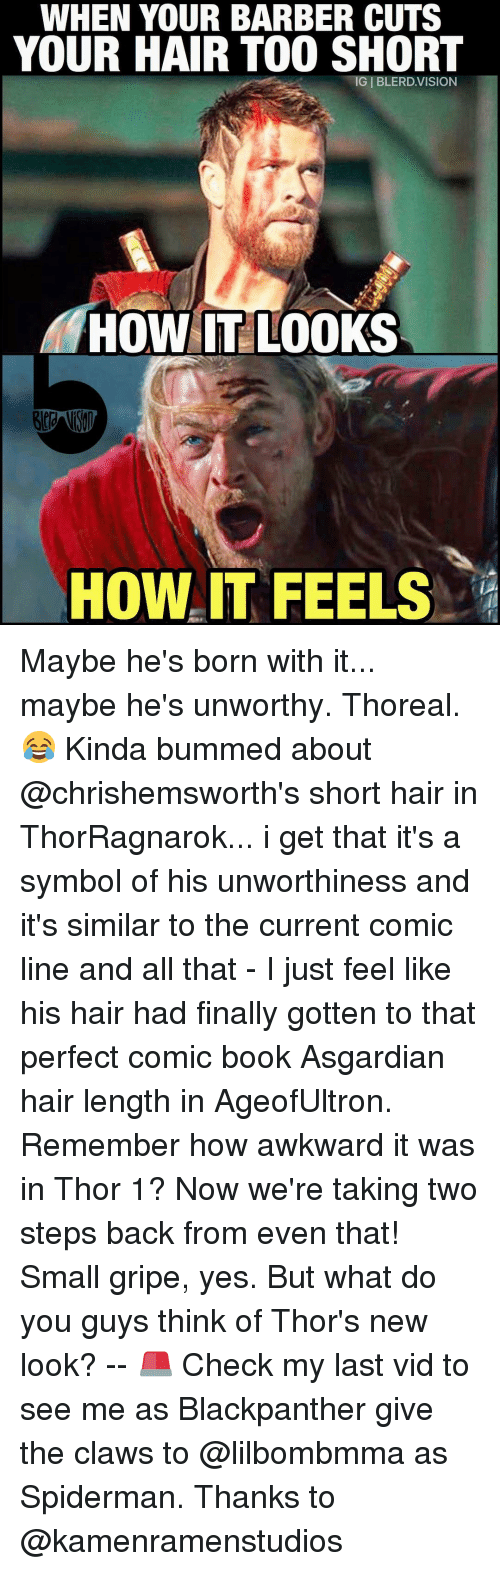 Barber, Memes, and Too Short: WHEN YOUR BARBER CUTS  YOUR HAIR TOO SHORT  HOW IT LOOKS  HOW IT FEELS Maybe he's born with it... maybe he's unworthy. Thoreal. 😂 Kinda bummed about @chrishemsworth's short hair in ThorRagnarok... i get that it's a symbol of his unworthiness and it's similar to the current comic line and all that - I just feel like his hair had finally gotten to that perfect comic book Asgardian hair length in AgeofUltron. Remember how awkward it was in Thor 1? Now we're taking two steps back from even that! Small gripe, yes. But what do you guys think of Thor's new look? -- 🚨 Check my last vid to see me as Blackpanther give the claws to @lilbombmma as Spiderman. Thanks to @kamenramenstudios